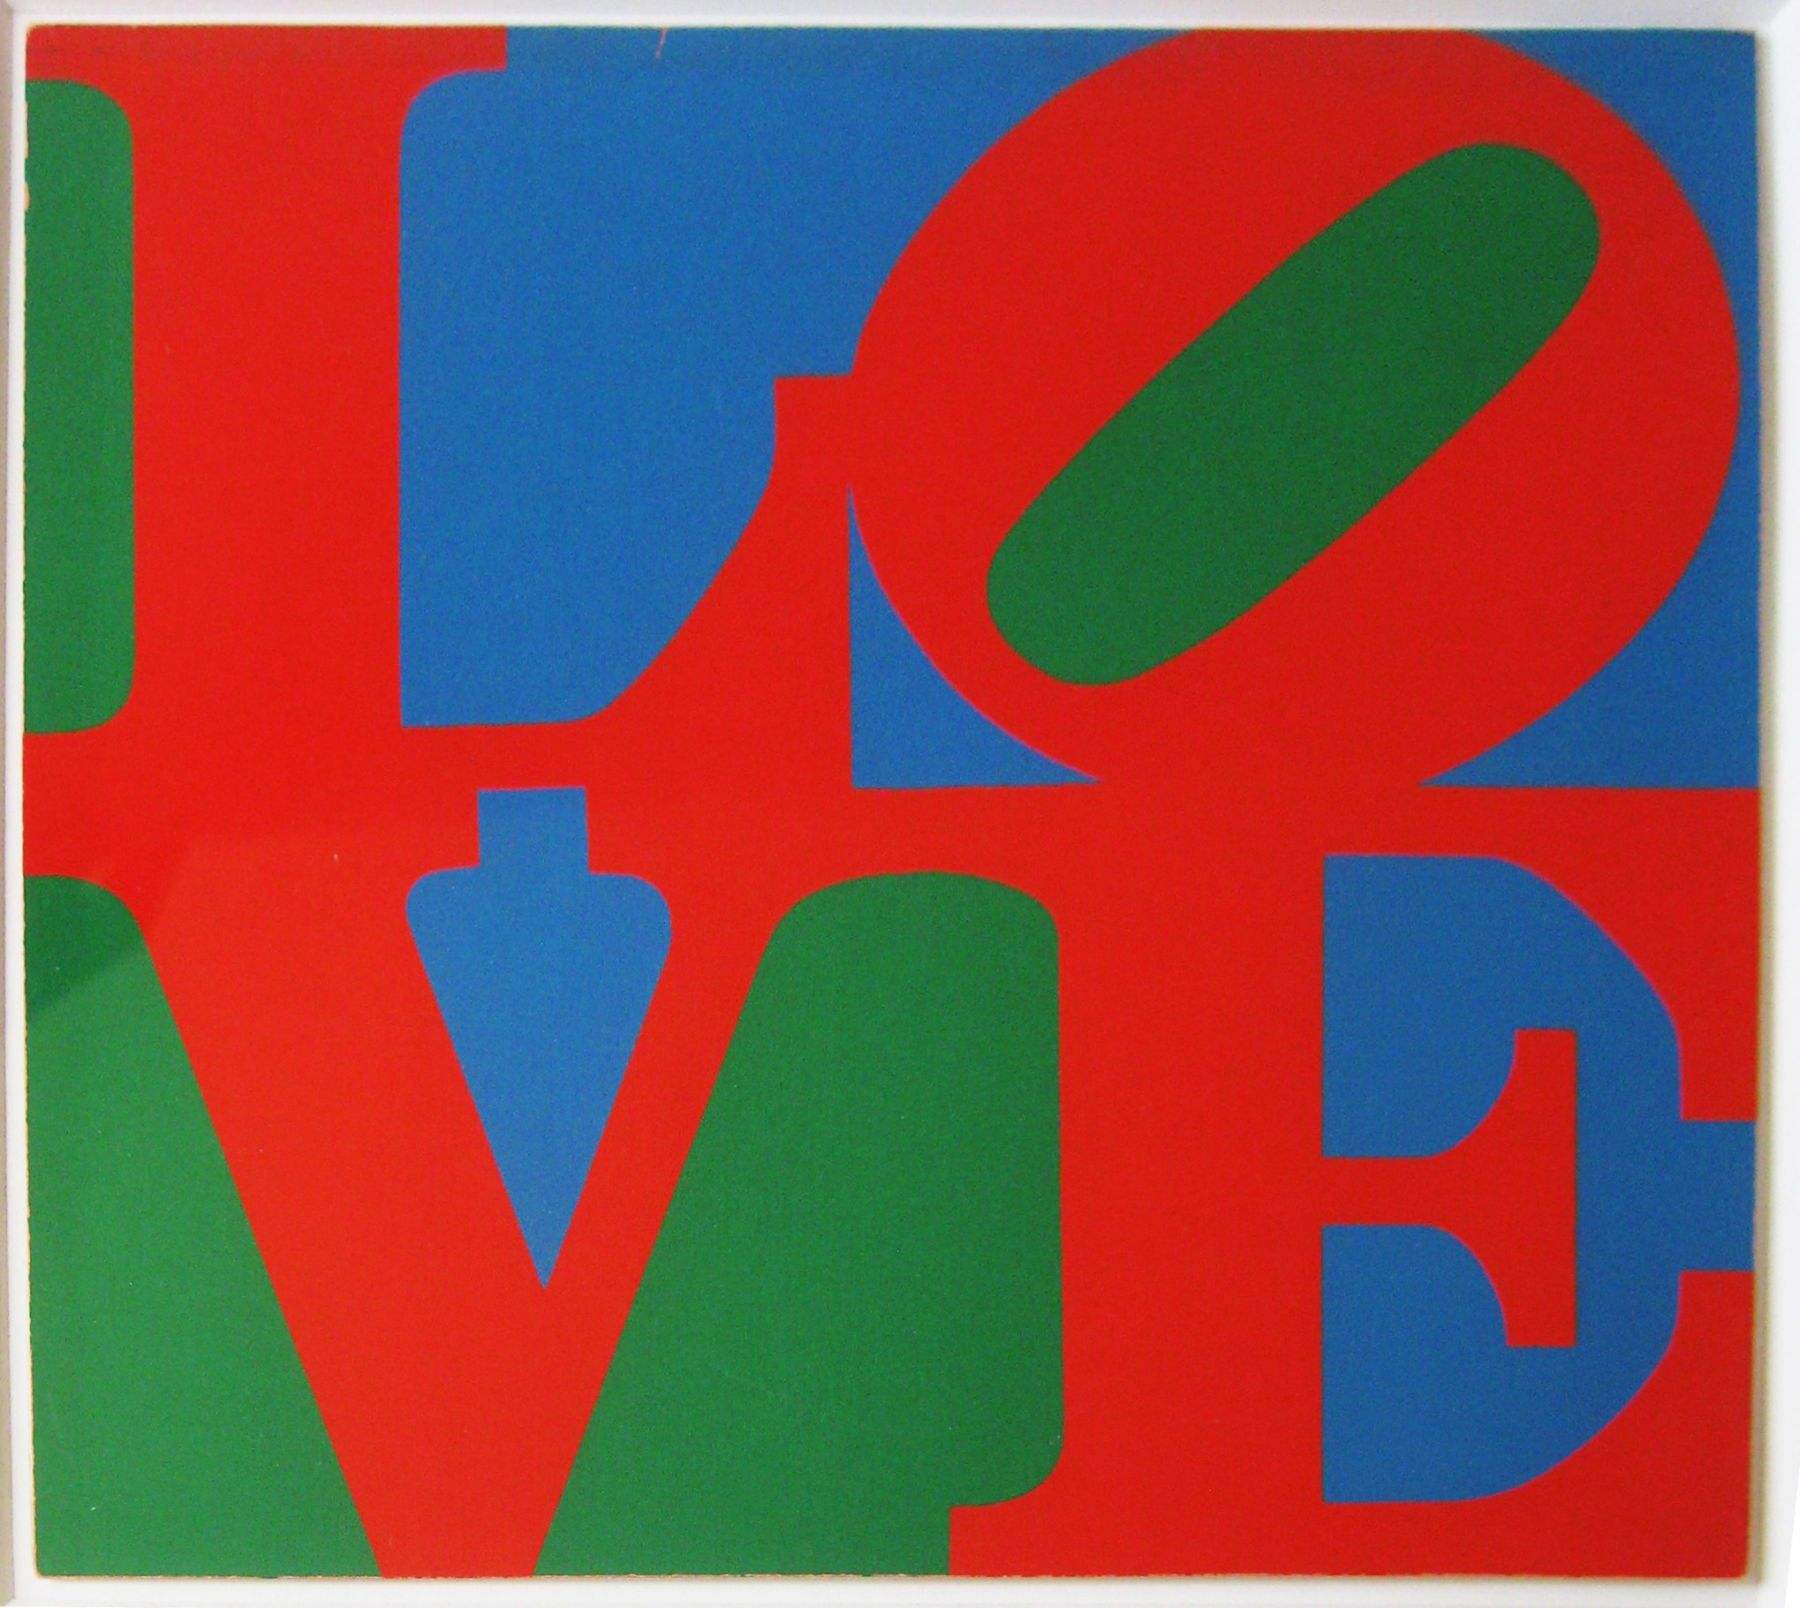 """ROBERT INDIANA. """"Love"""" (MoMA). 1965. Image courtesy of Alden Projects™, New York."""